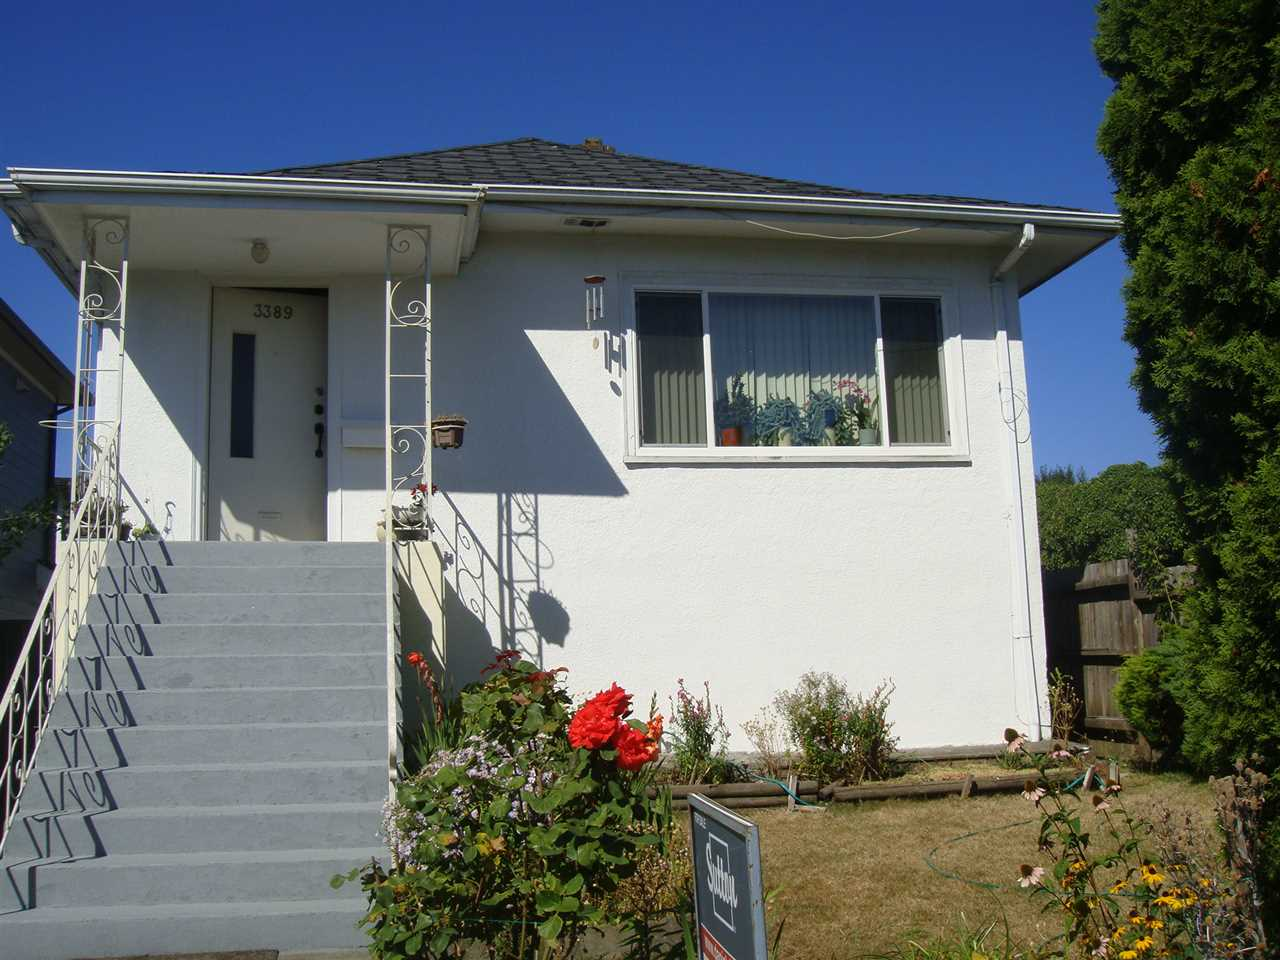 Nice home in Renfrew area with four bedrooms, two kitchens, and two baths.